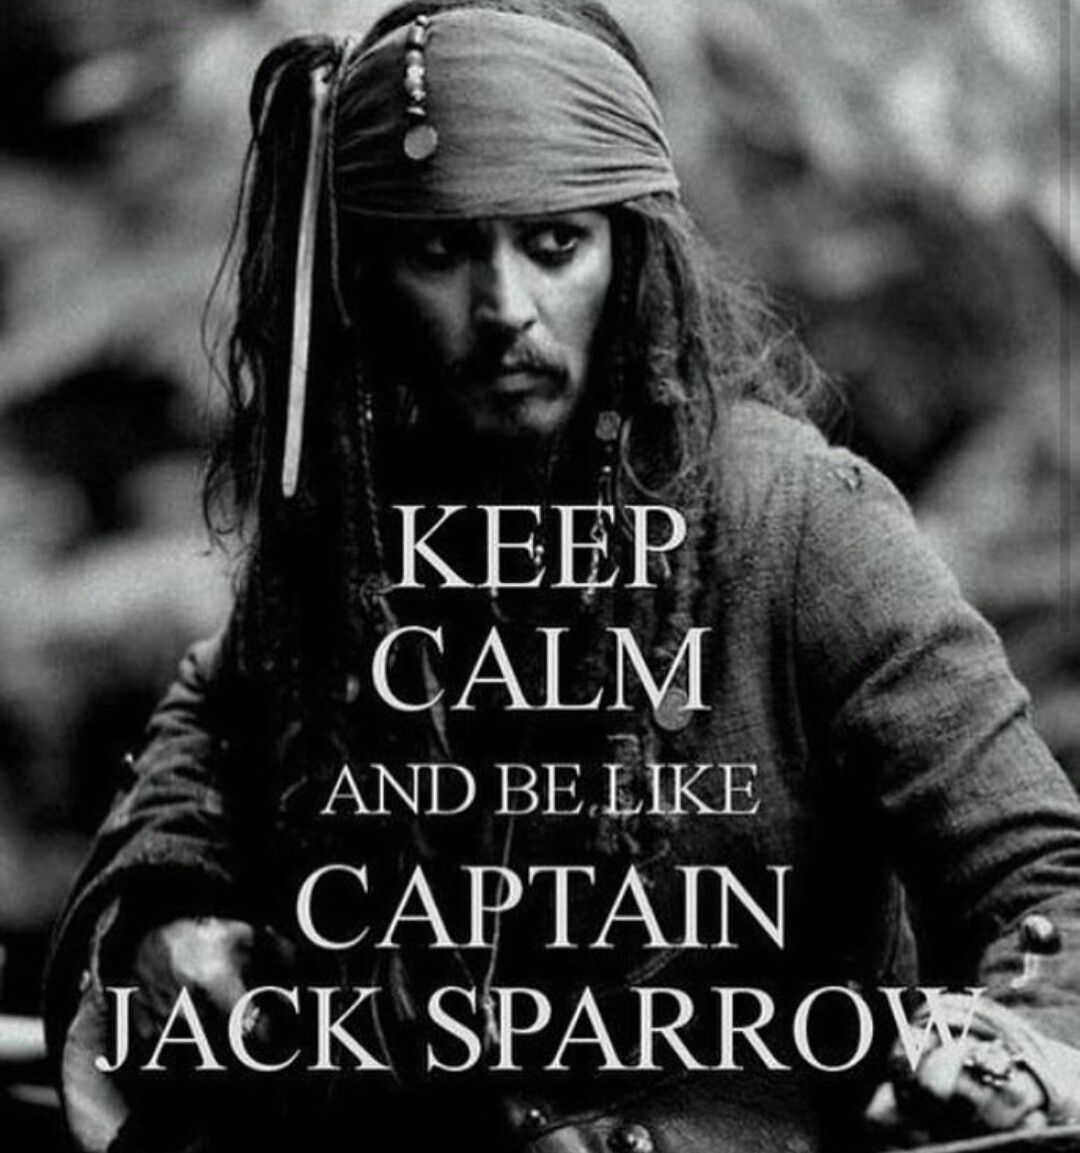 Pirates Of The Caribbean Quotes Pinterest Lexi_Niccole_  Pirates Pinterest  Caribbean Jack